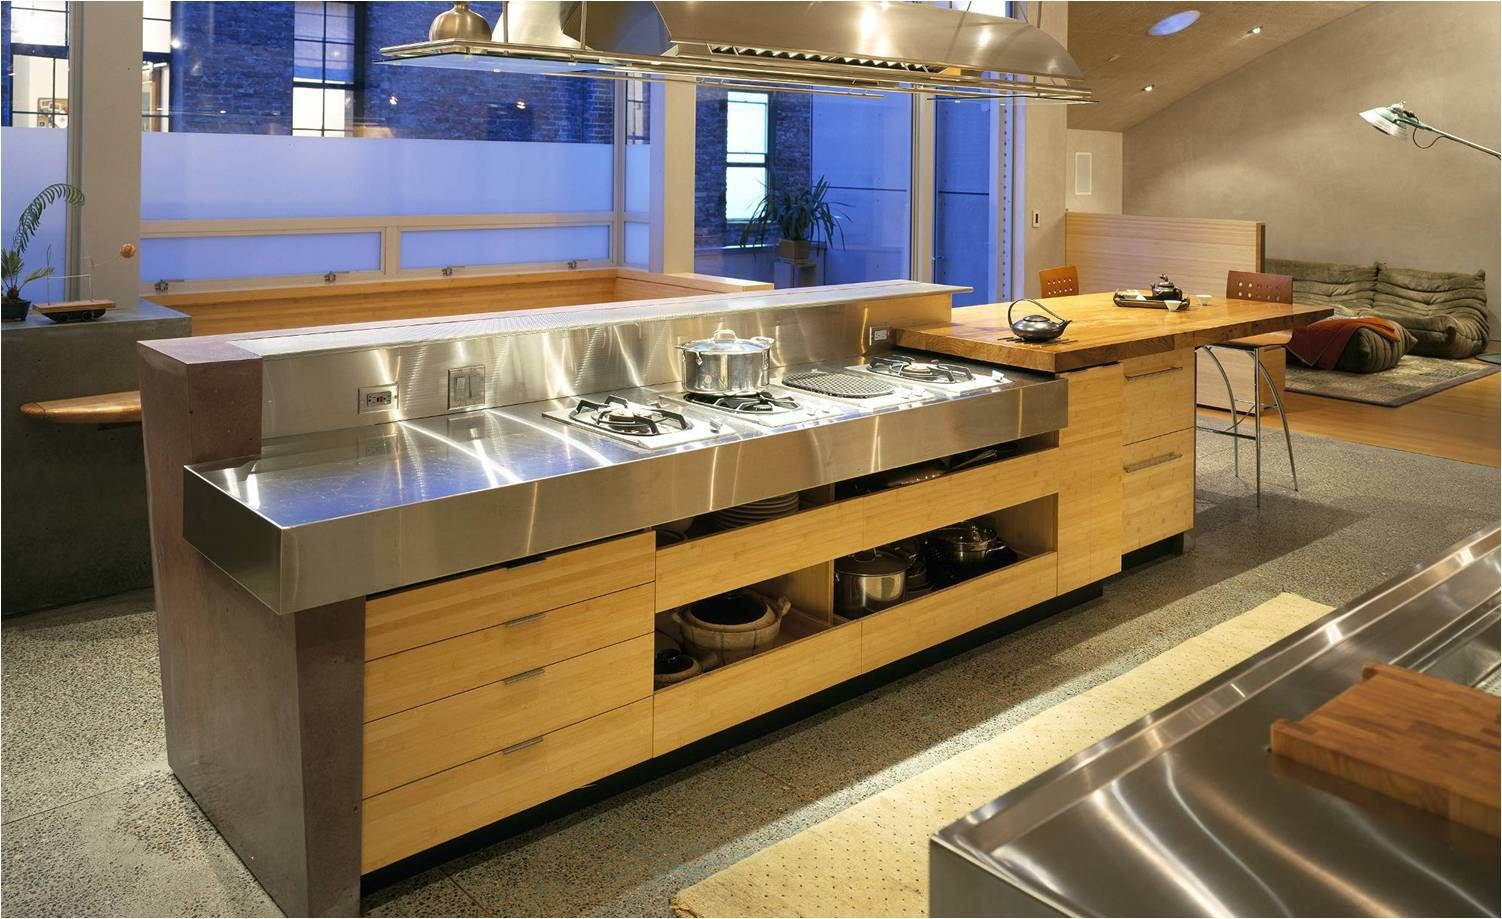 Bamboo Cabinets Green Cabinets Custom Cabinets Bamboo Kitchen Cabinets Plywood Kitchen European Kitchens